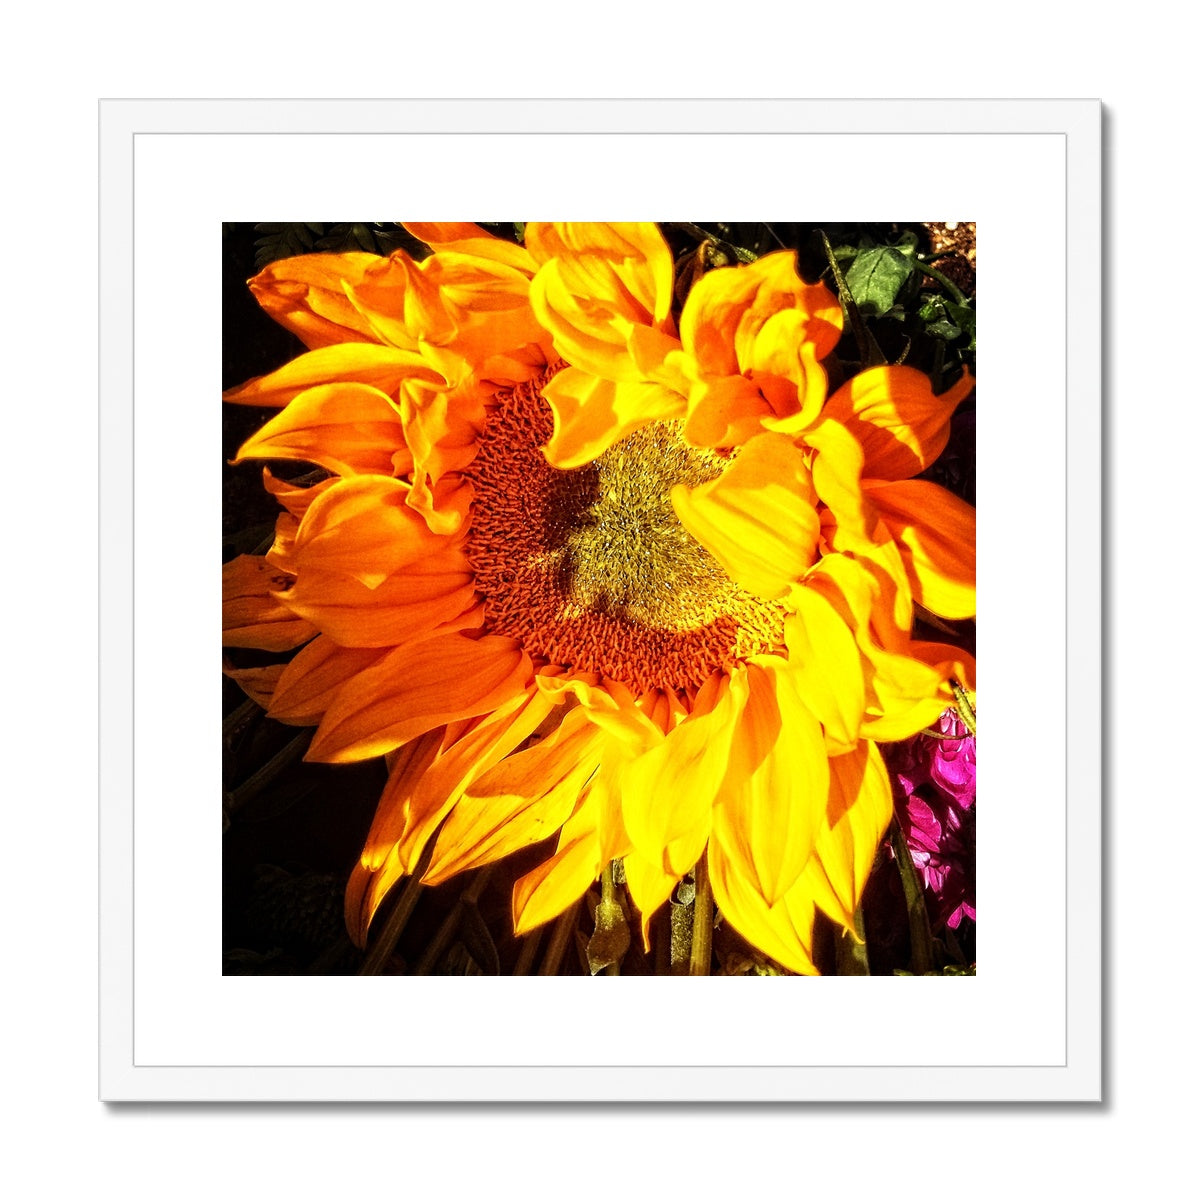 Sunflower Joy Shines Framed & Mounted Print